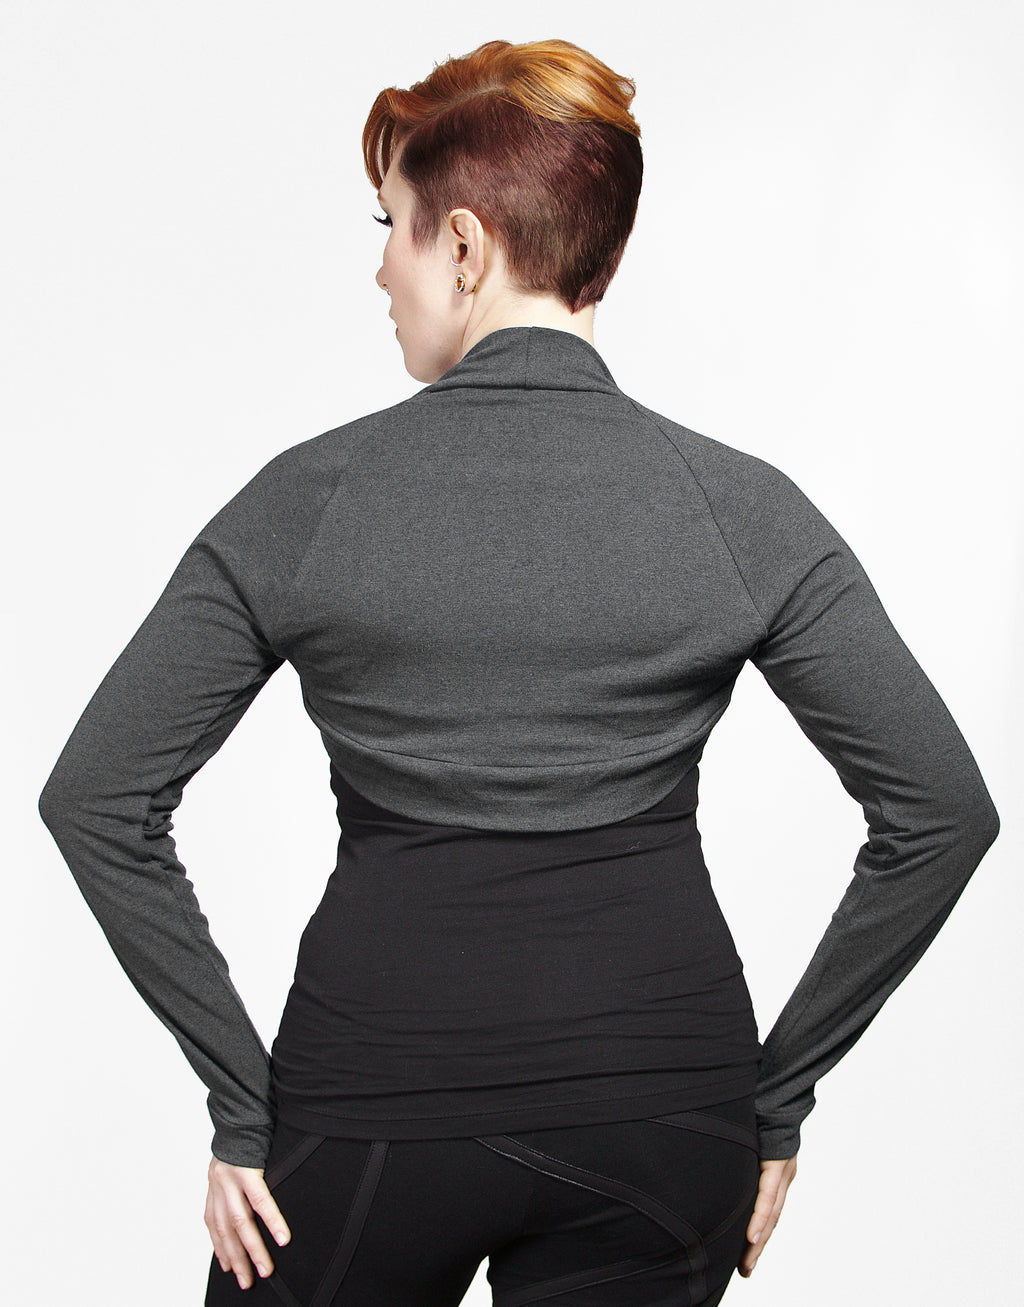 Bamboo Shrug - Gray